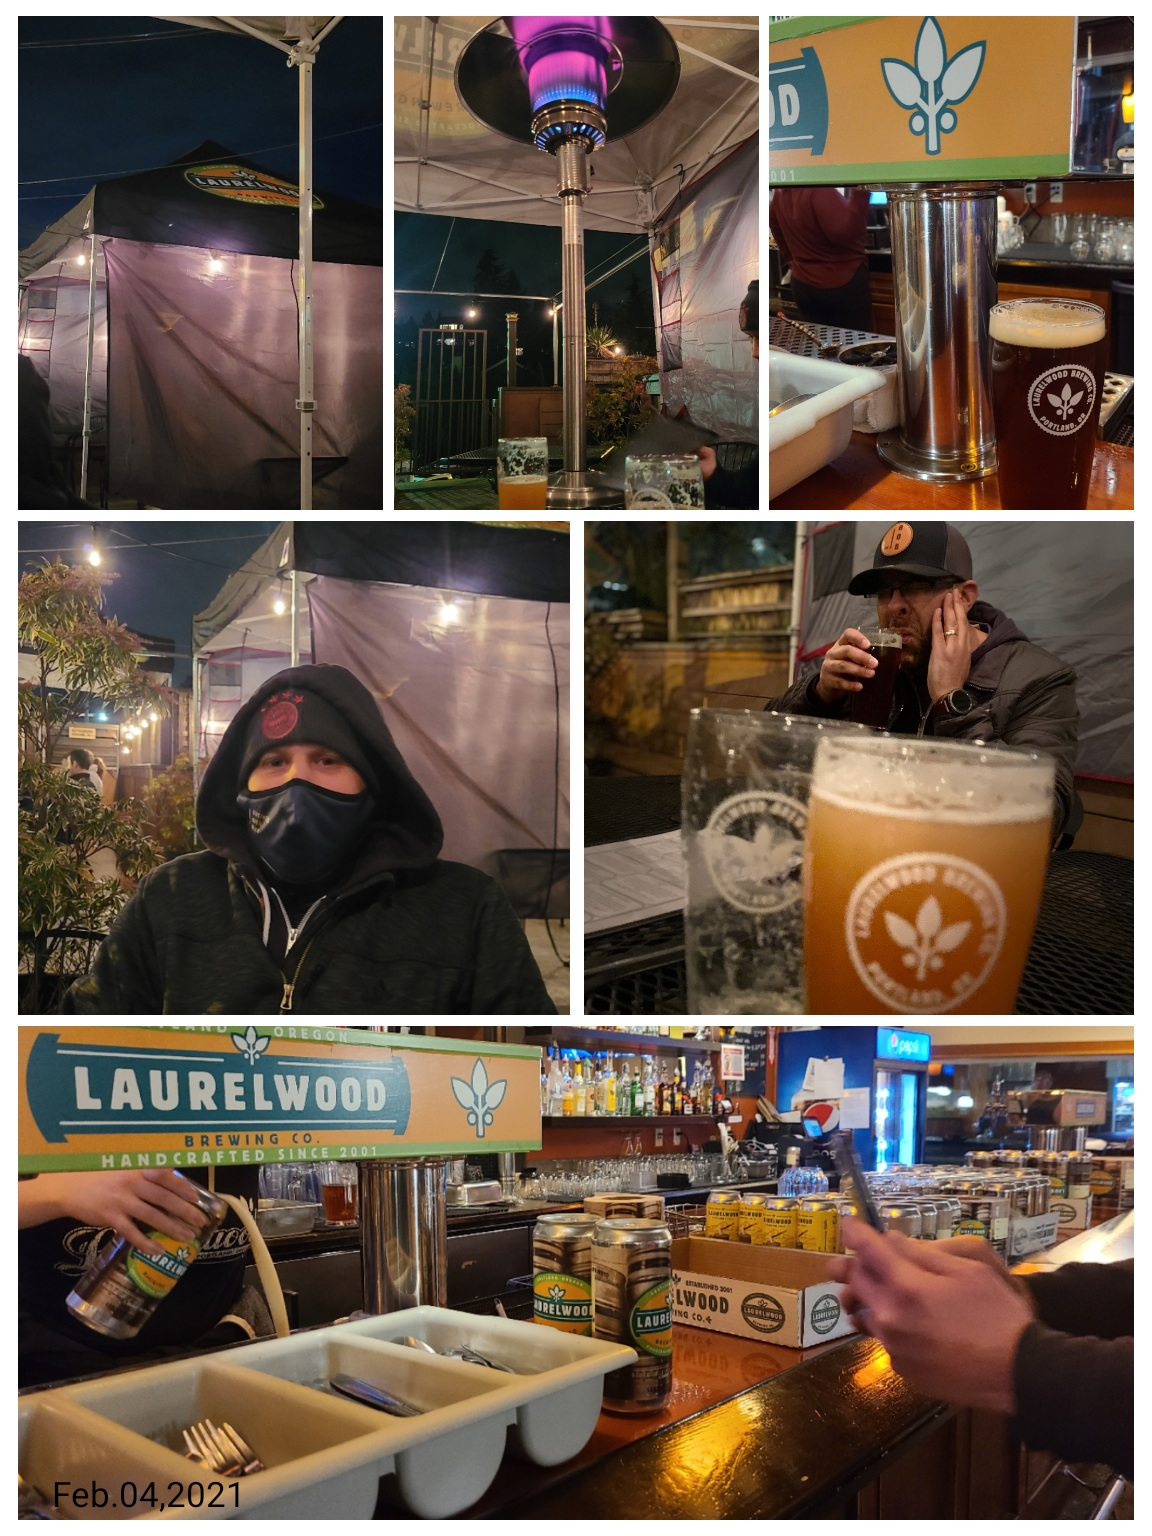 Thirsty Thursday with The BOB Laurelwood Brewery